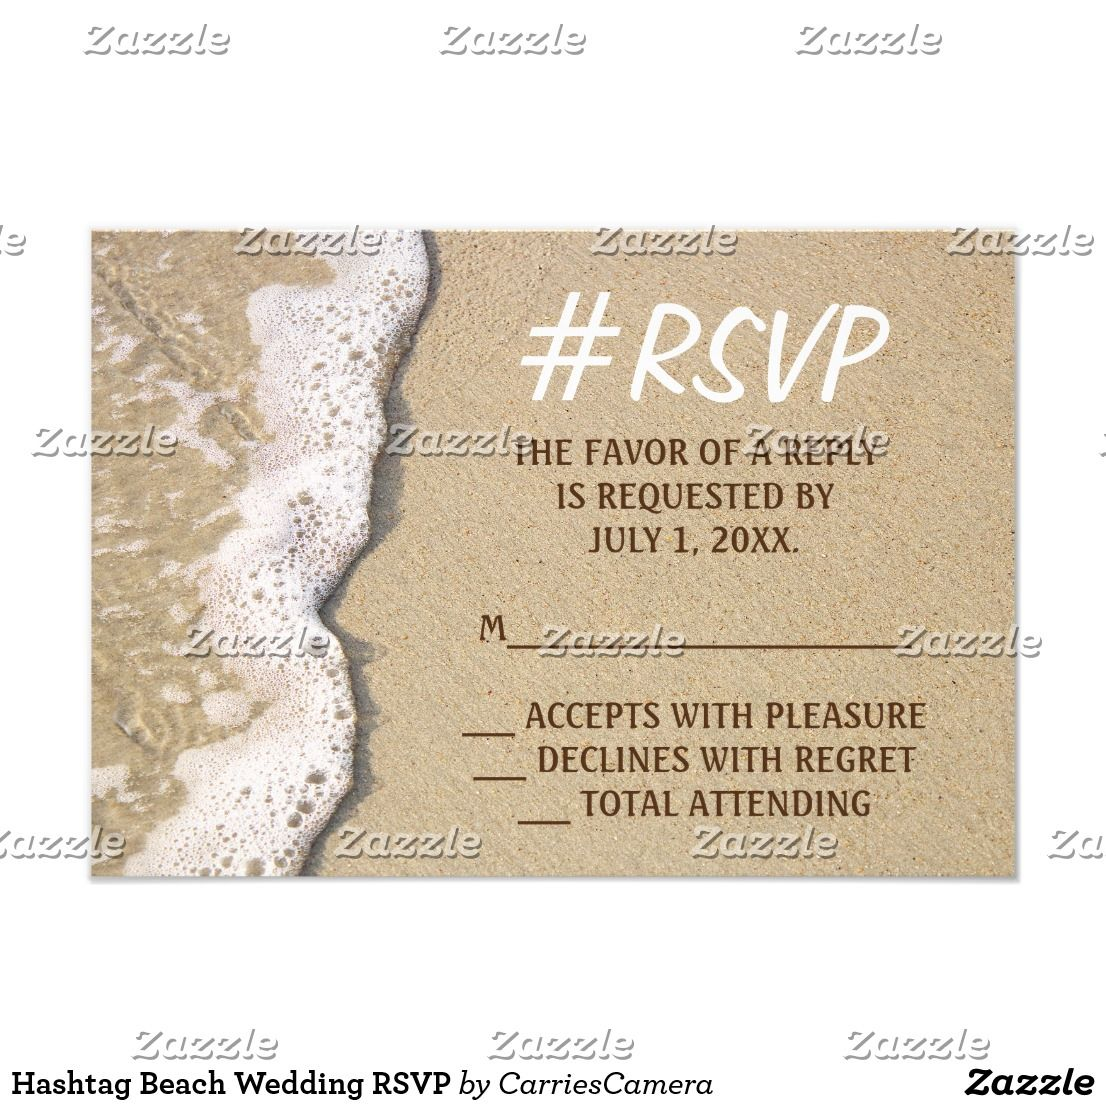 Hashtag Beach Wedding RSVP Wedding rsvp